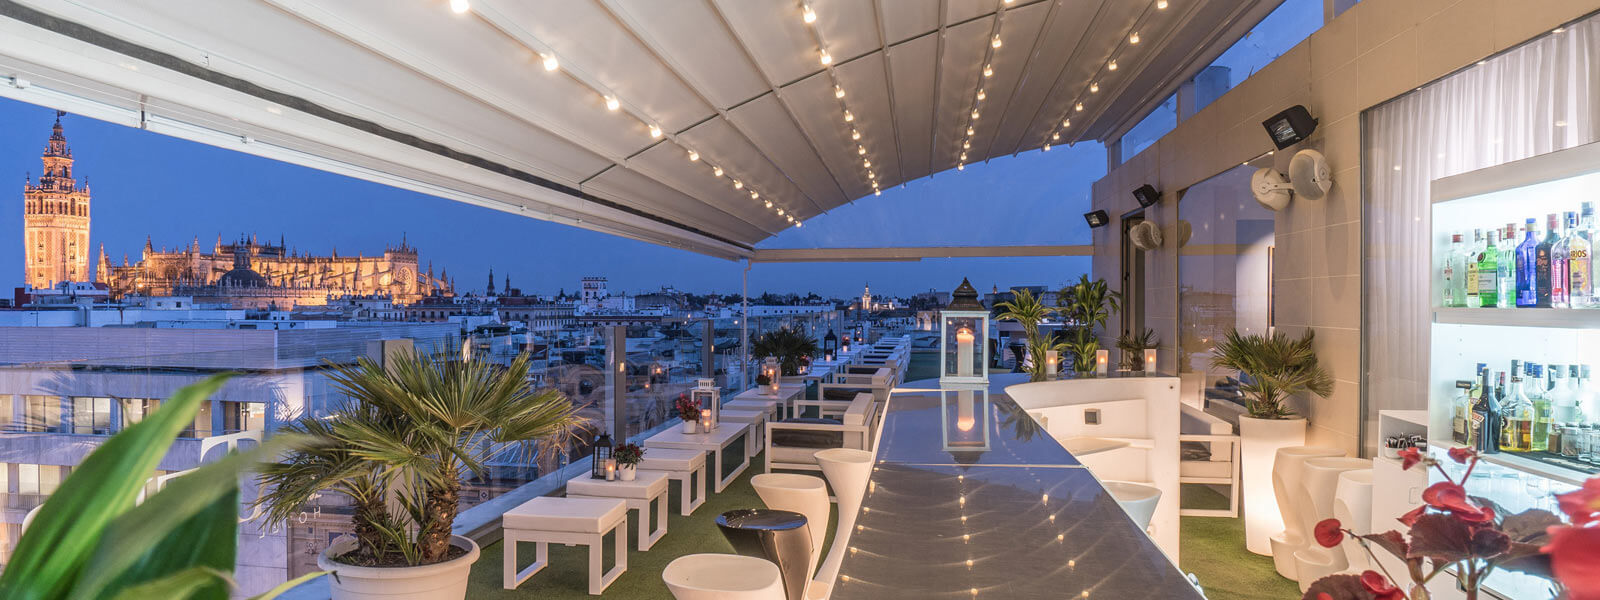 Terrace Hotel Inglaterra Seville City Centre Official